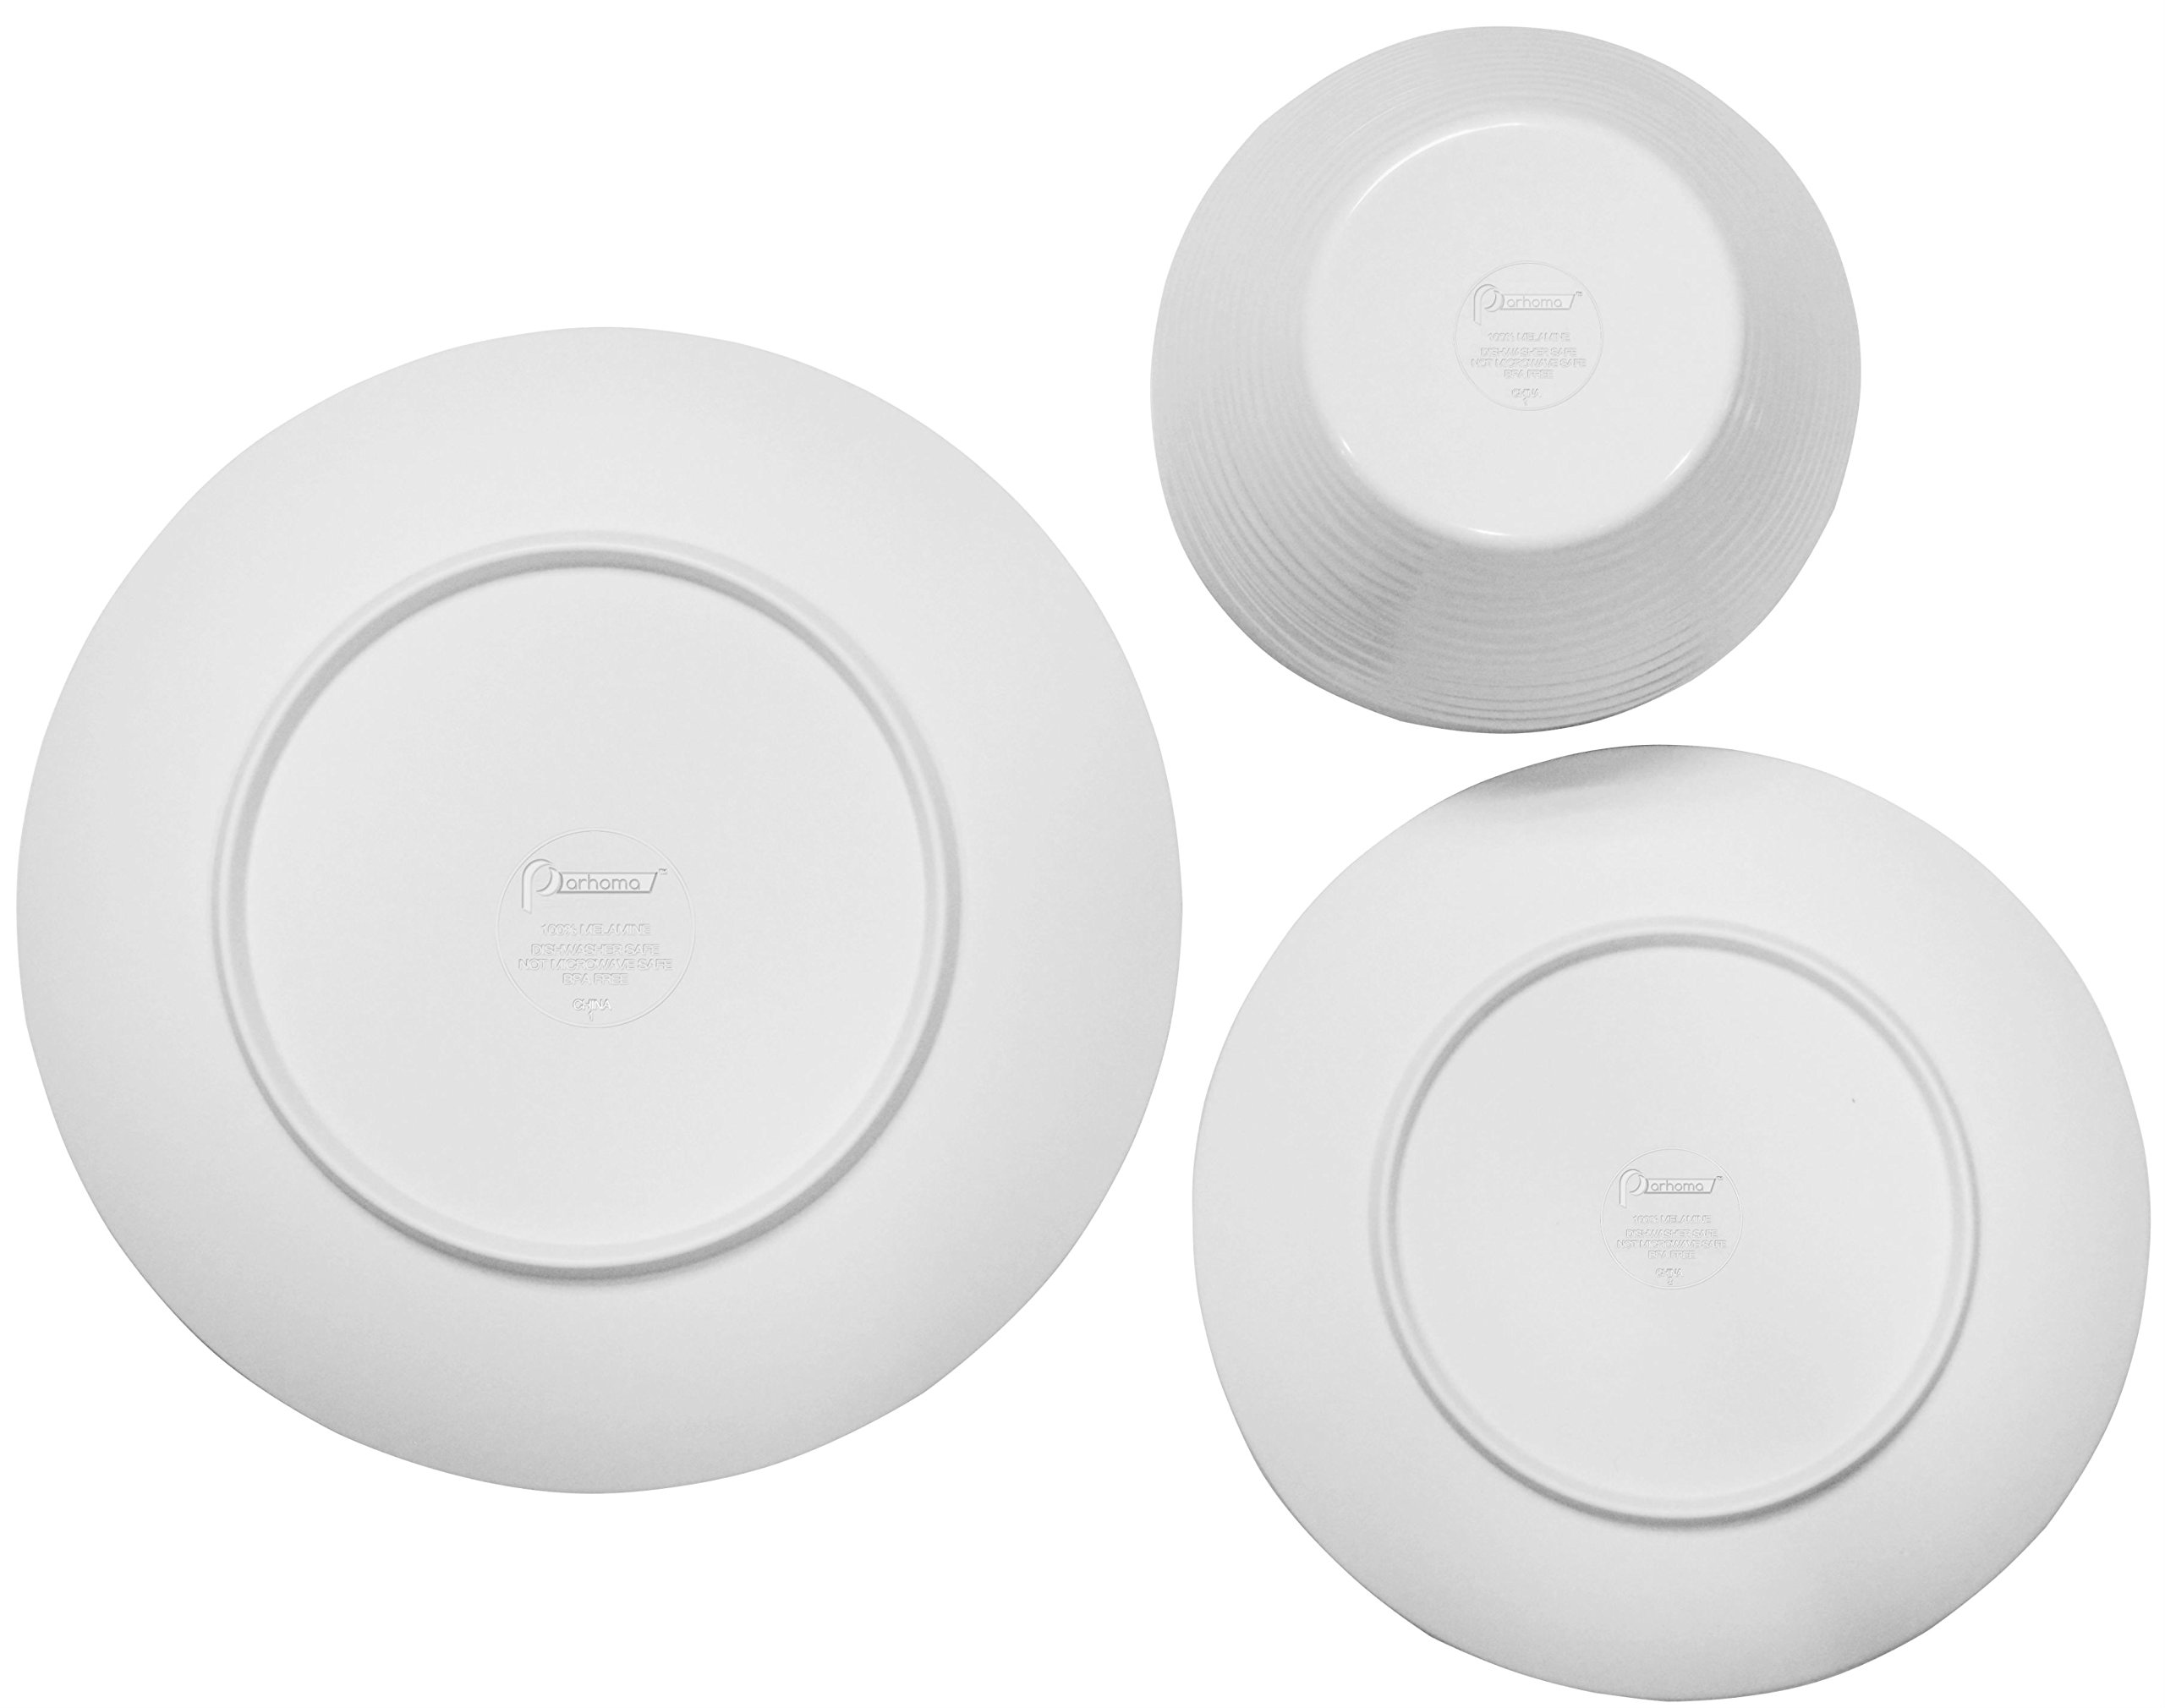 Parhoma White Melamine Home Dinnerware Set, 12-Piece Service for 4 by Parhoma (Image #9)